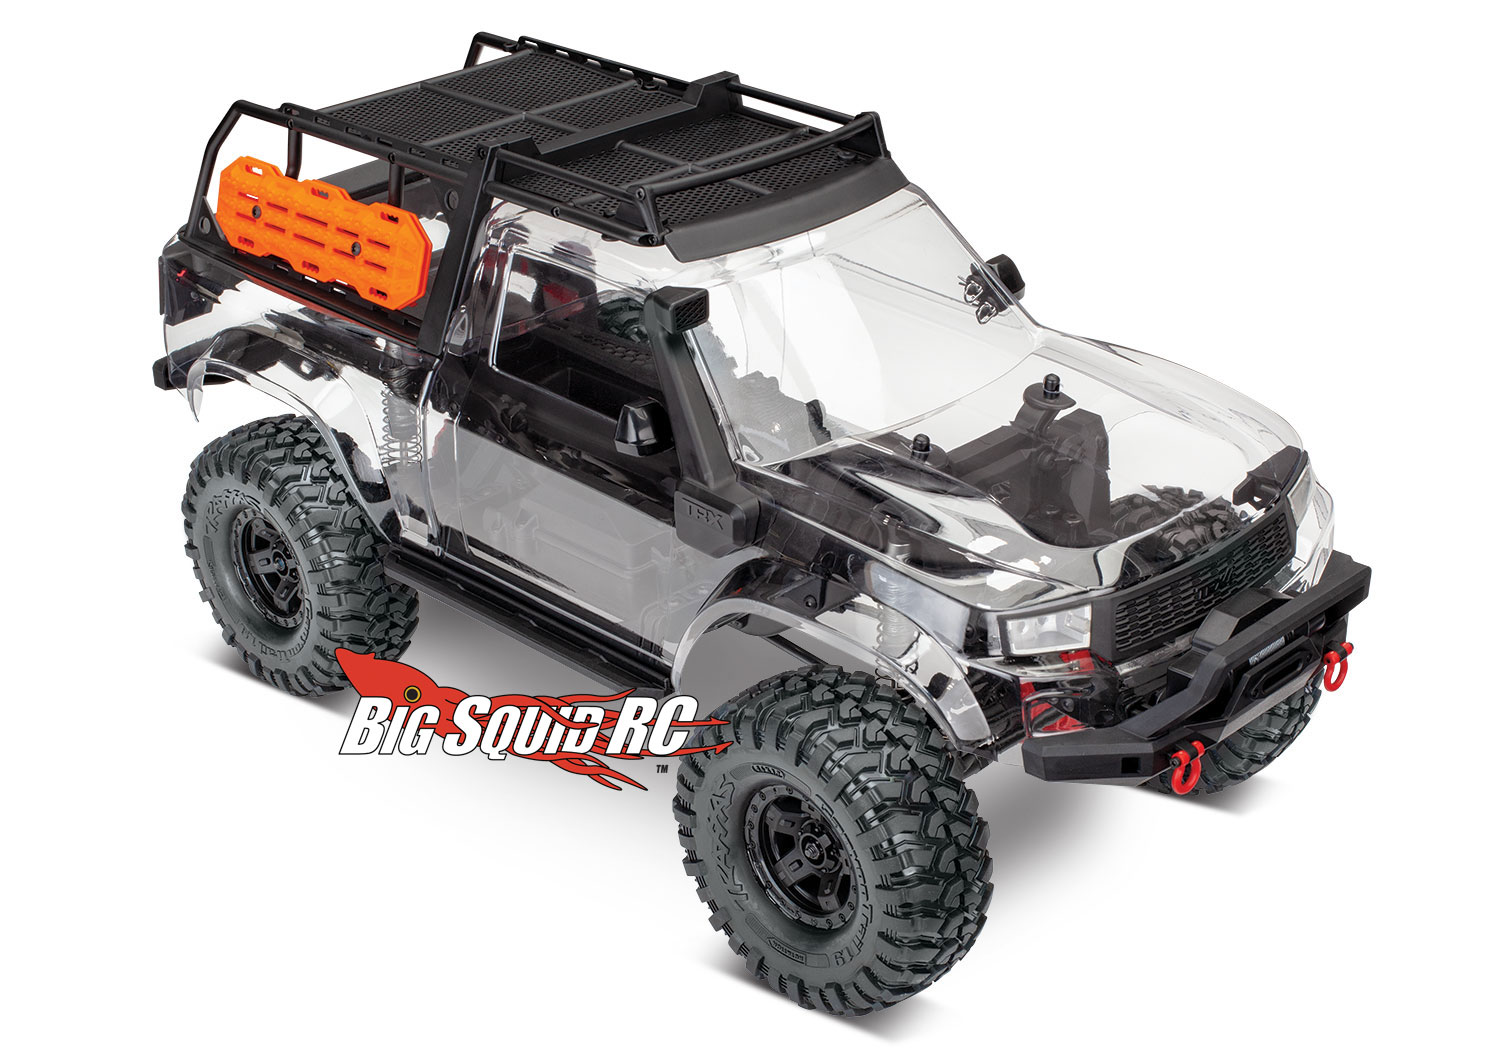 Truck Lift Shops >> Traxxas TRX-4 Sport Kit Coming Soon « Big Squid RC – RC Car and Truck News, Reviews, Videos, and ...